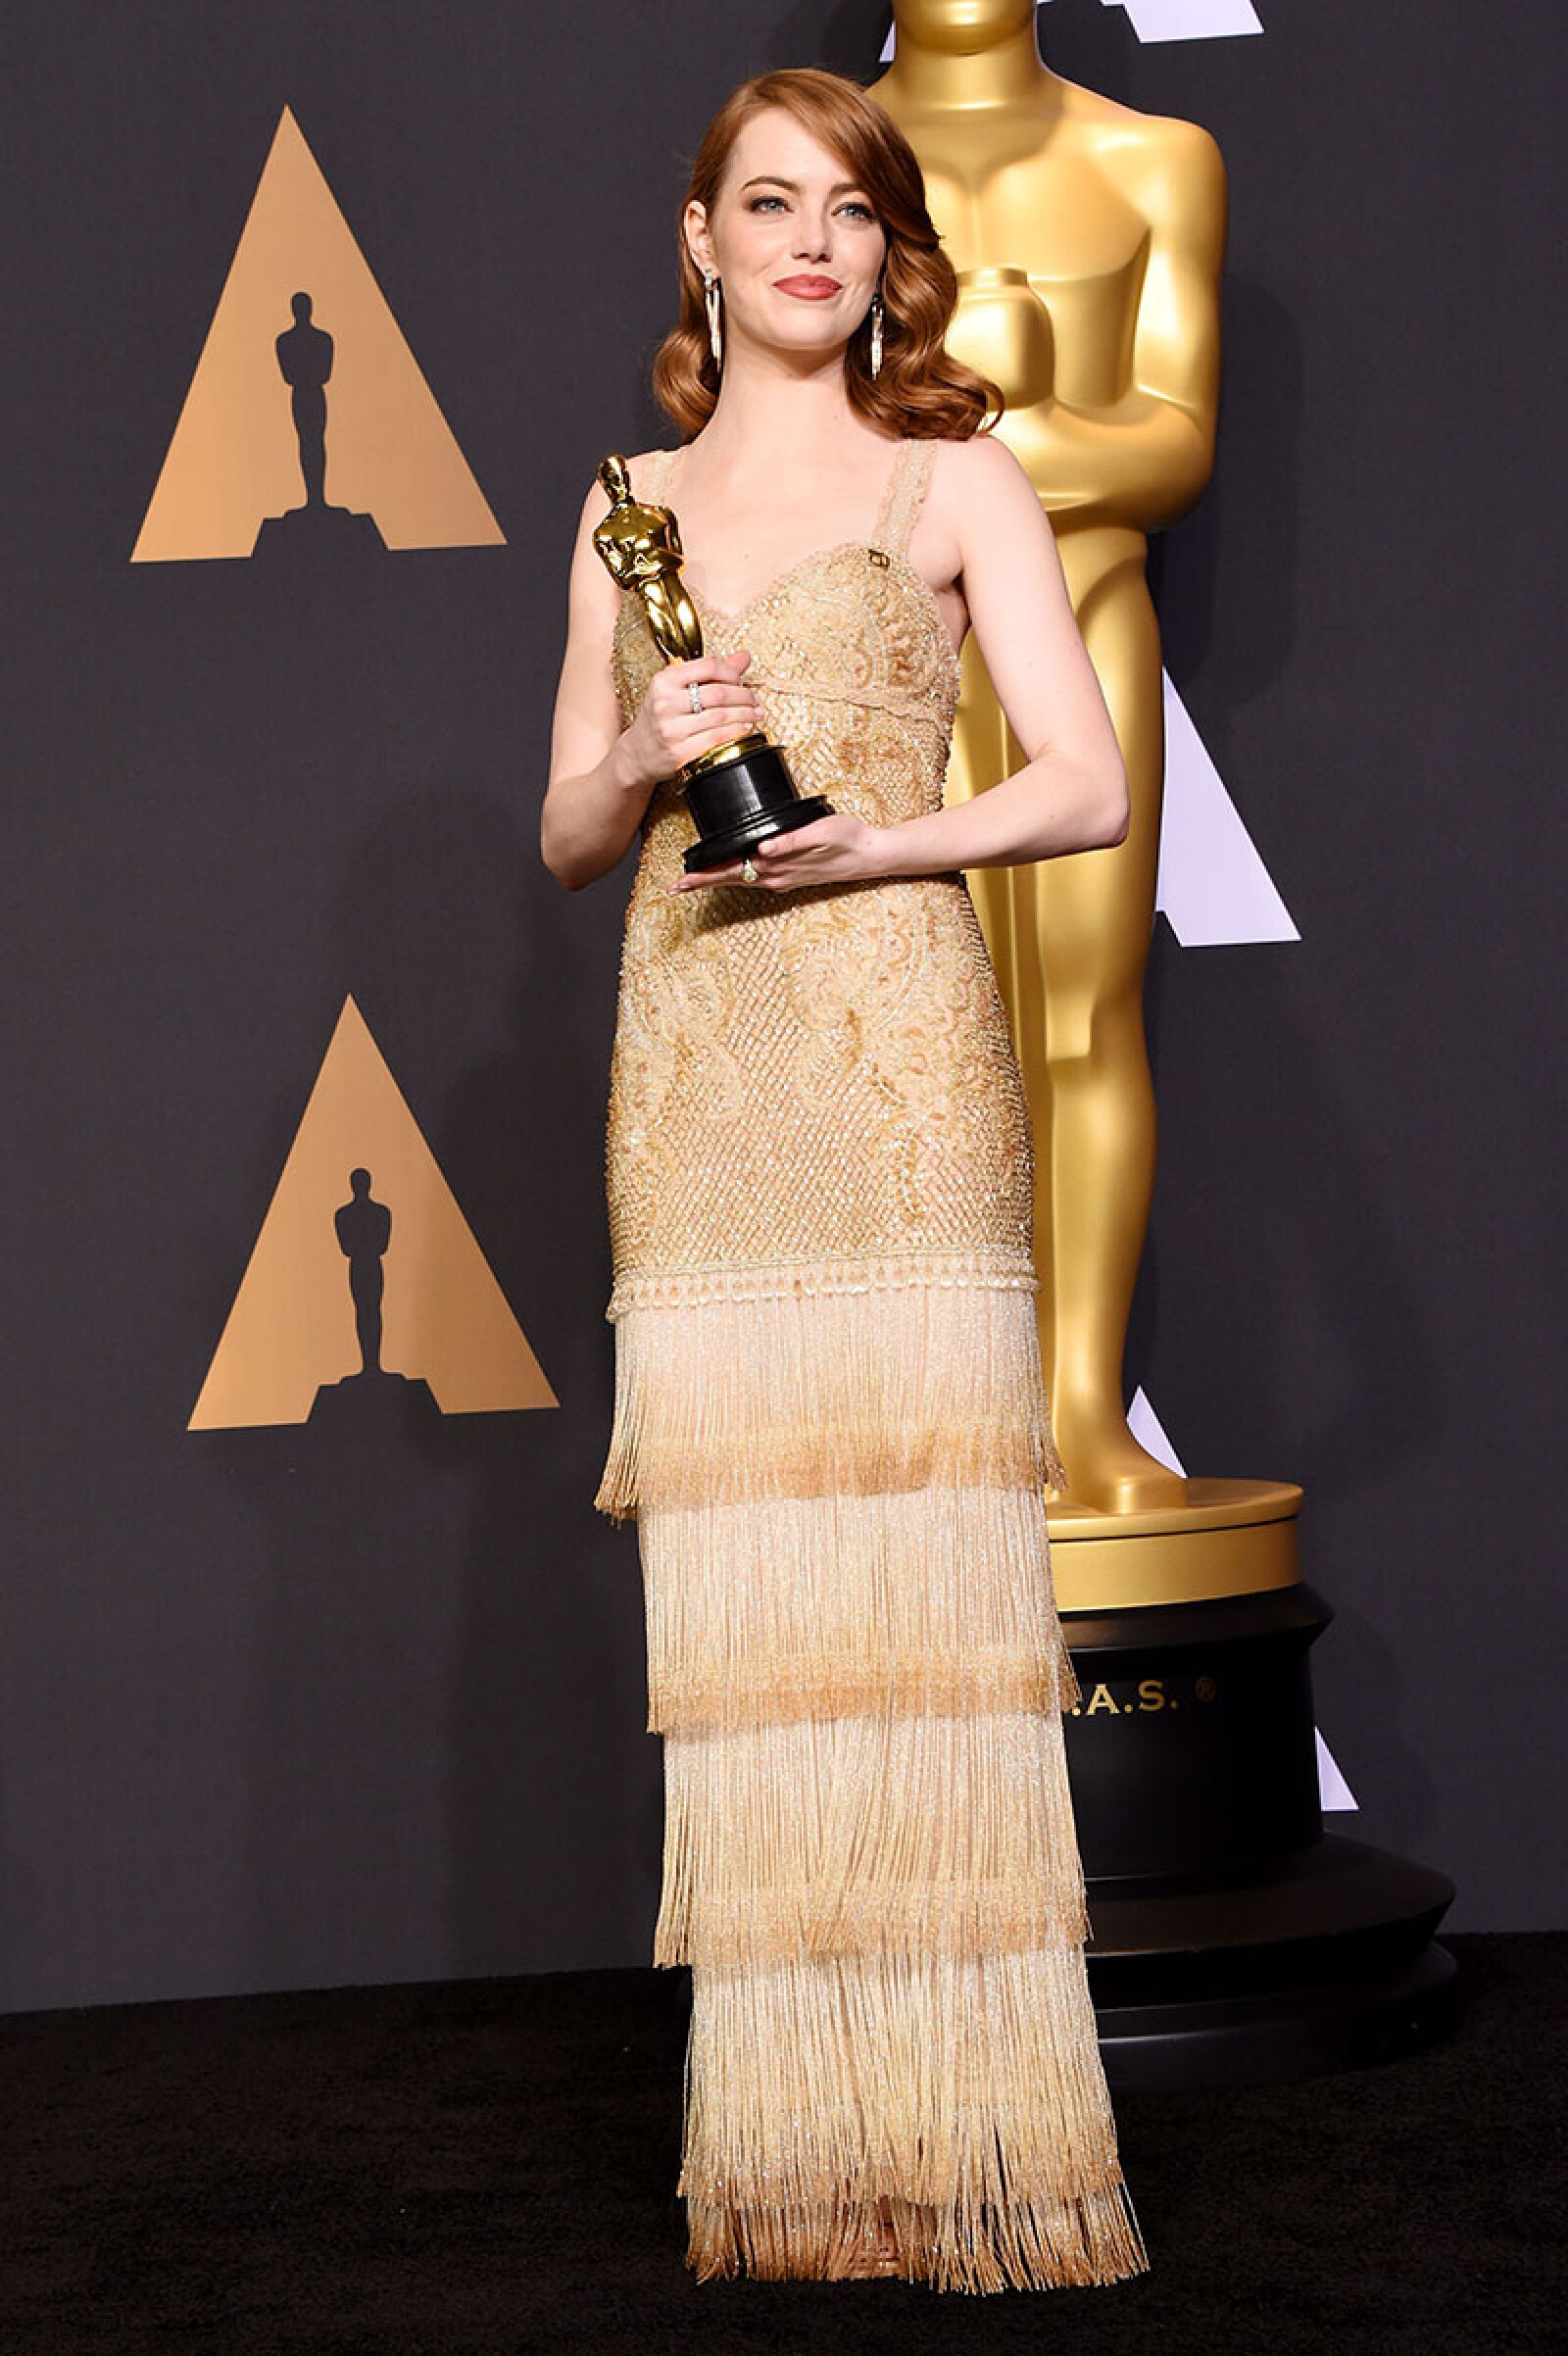 89th Annual Academy Awards, Press Room, Los Angeles, USA - 26 Feb 2017